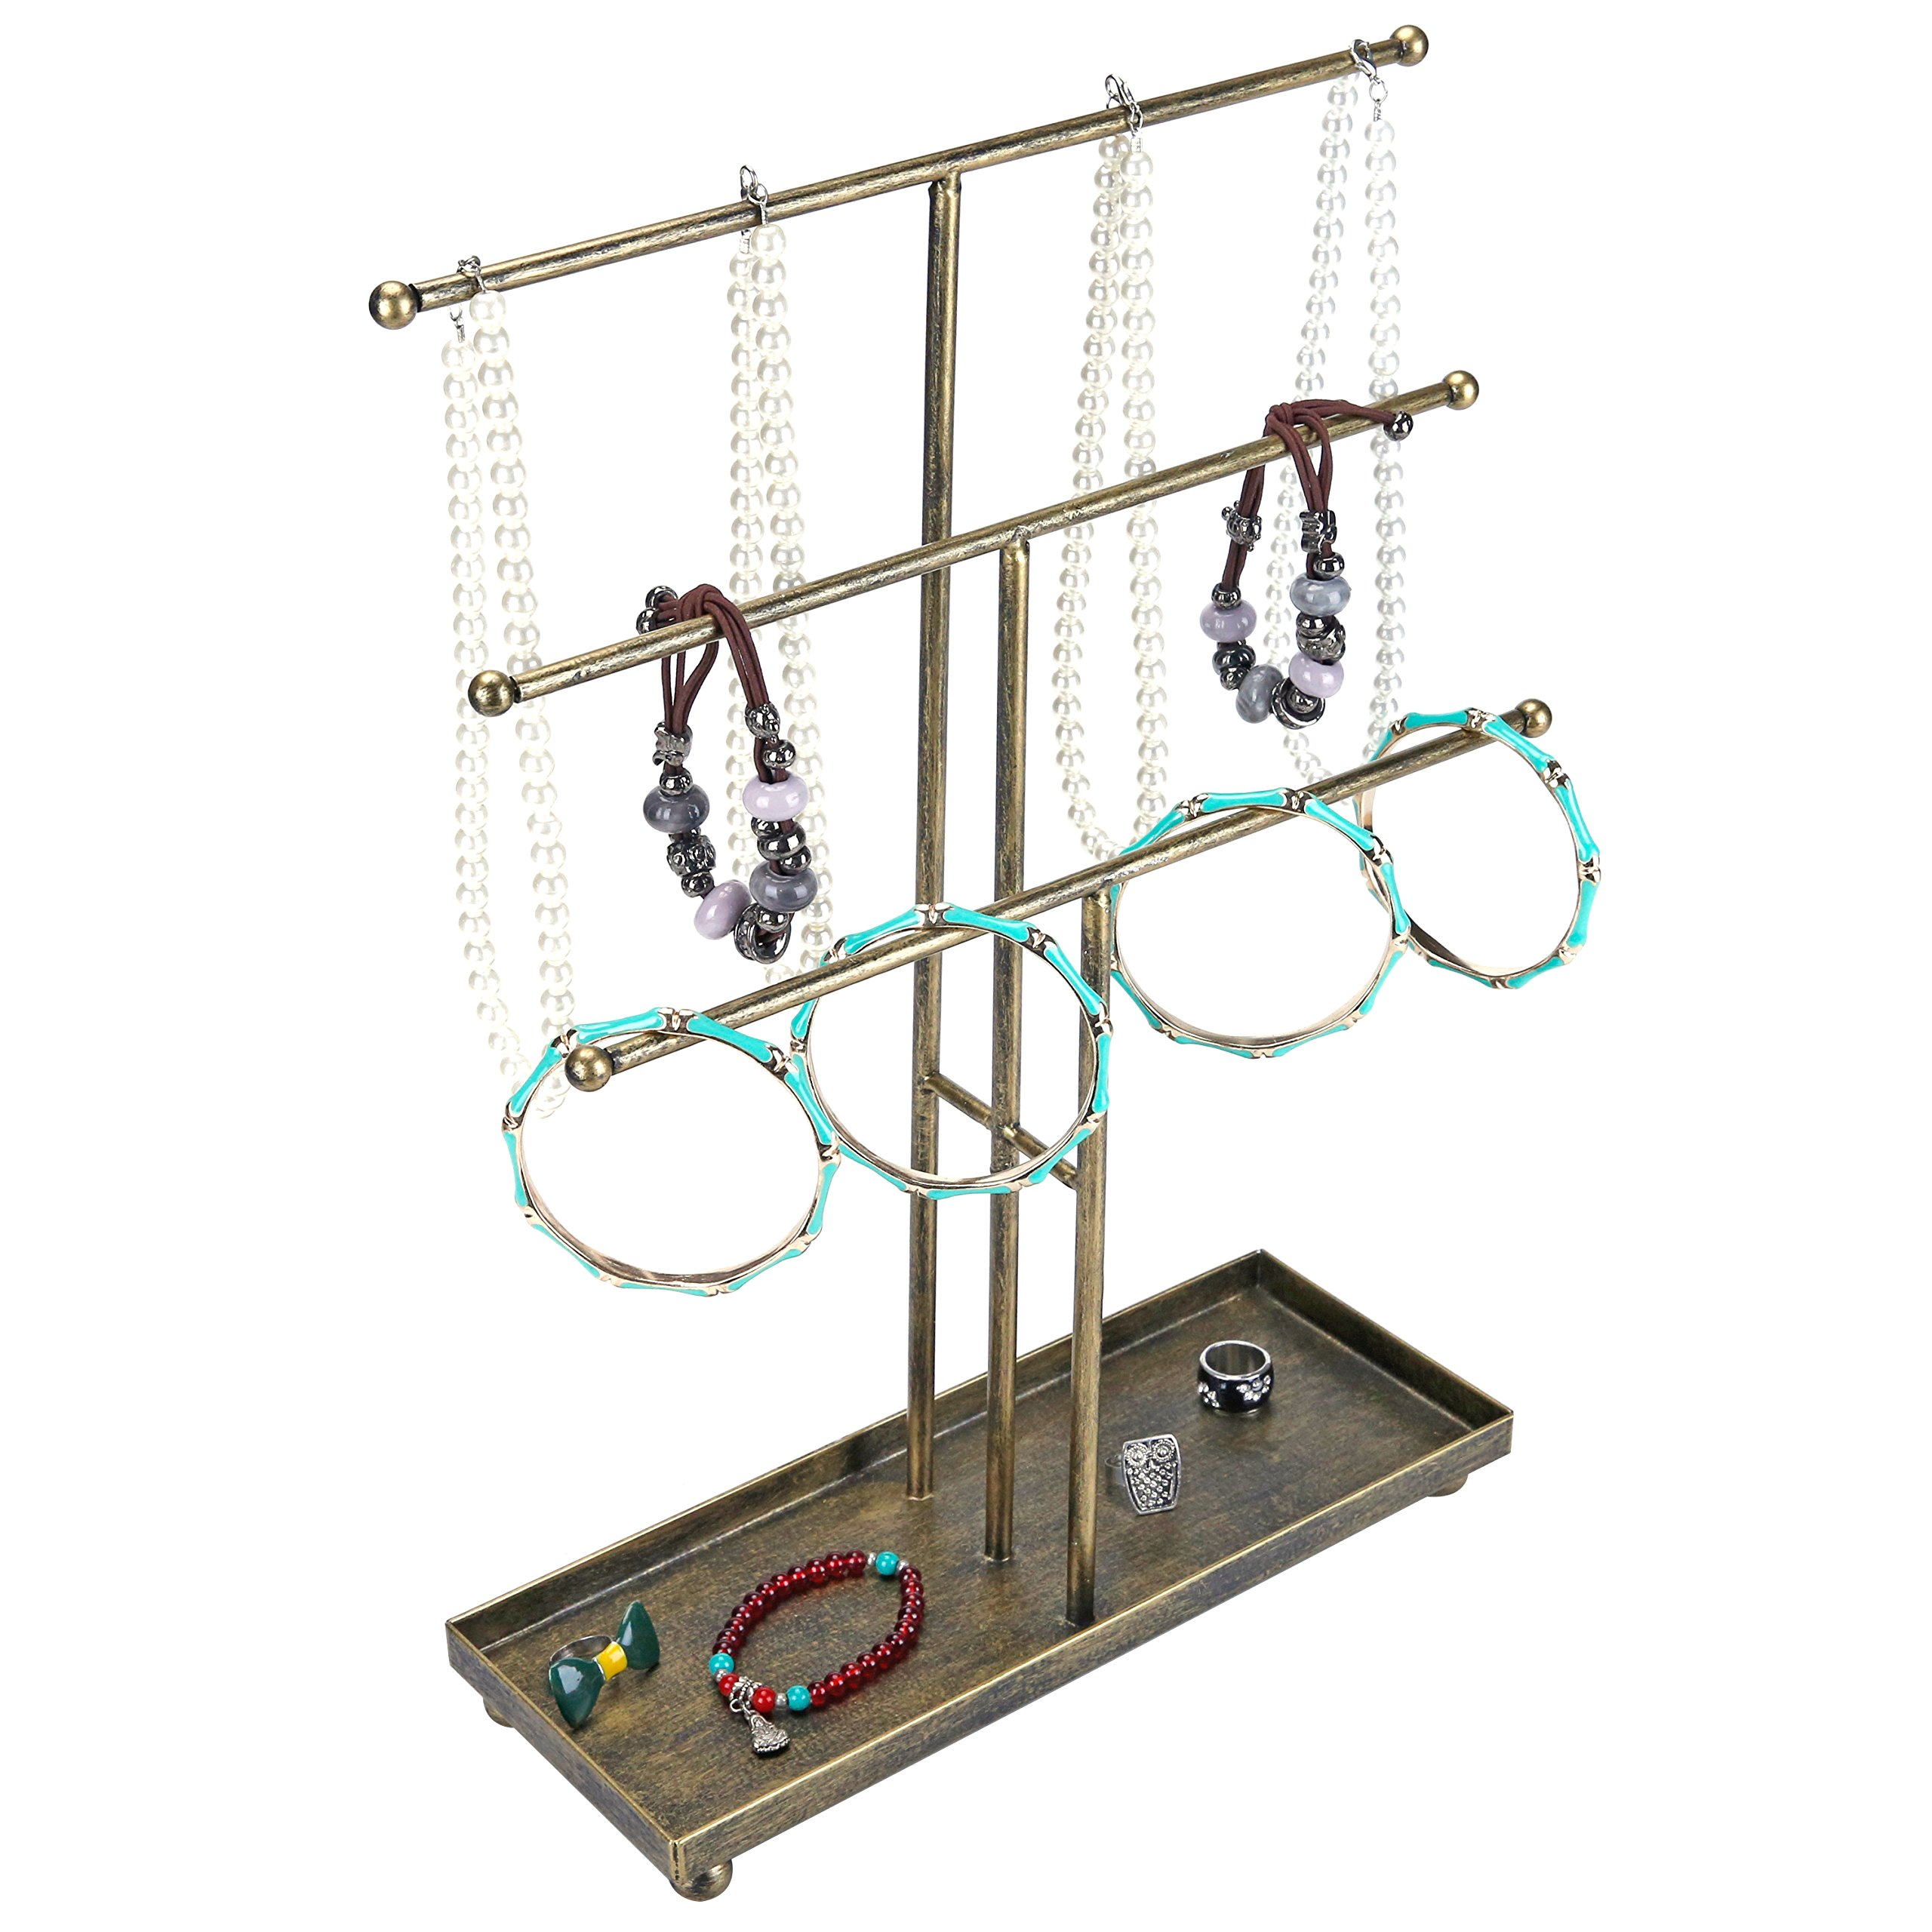 3 Tier Metal Rod Jewelry Organizer and Display Stand with Antique Matte Brass Finish